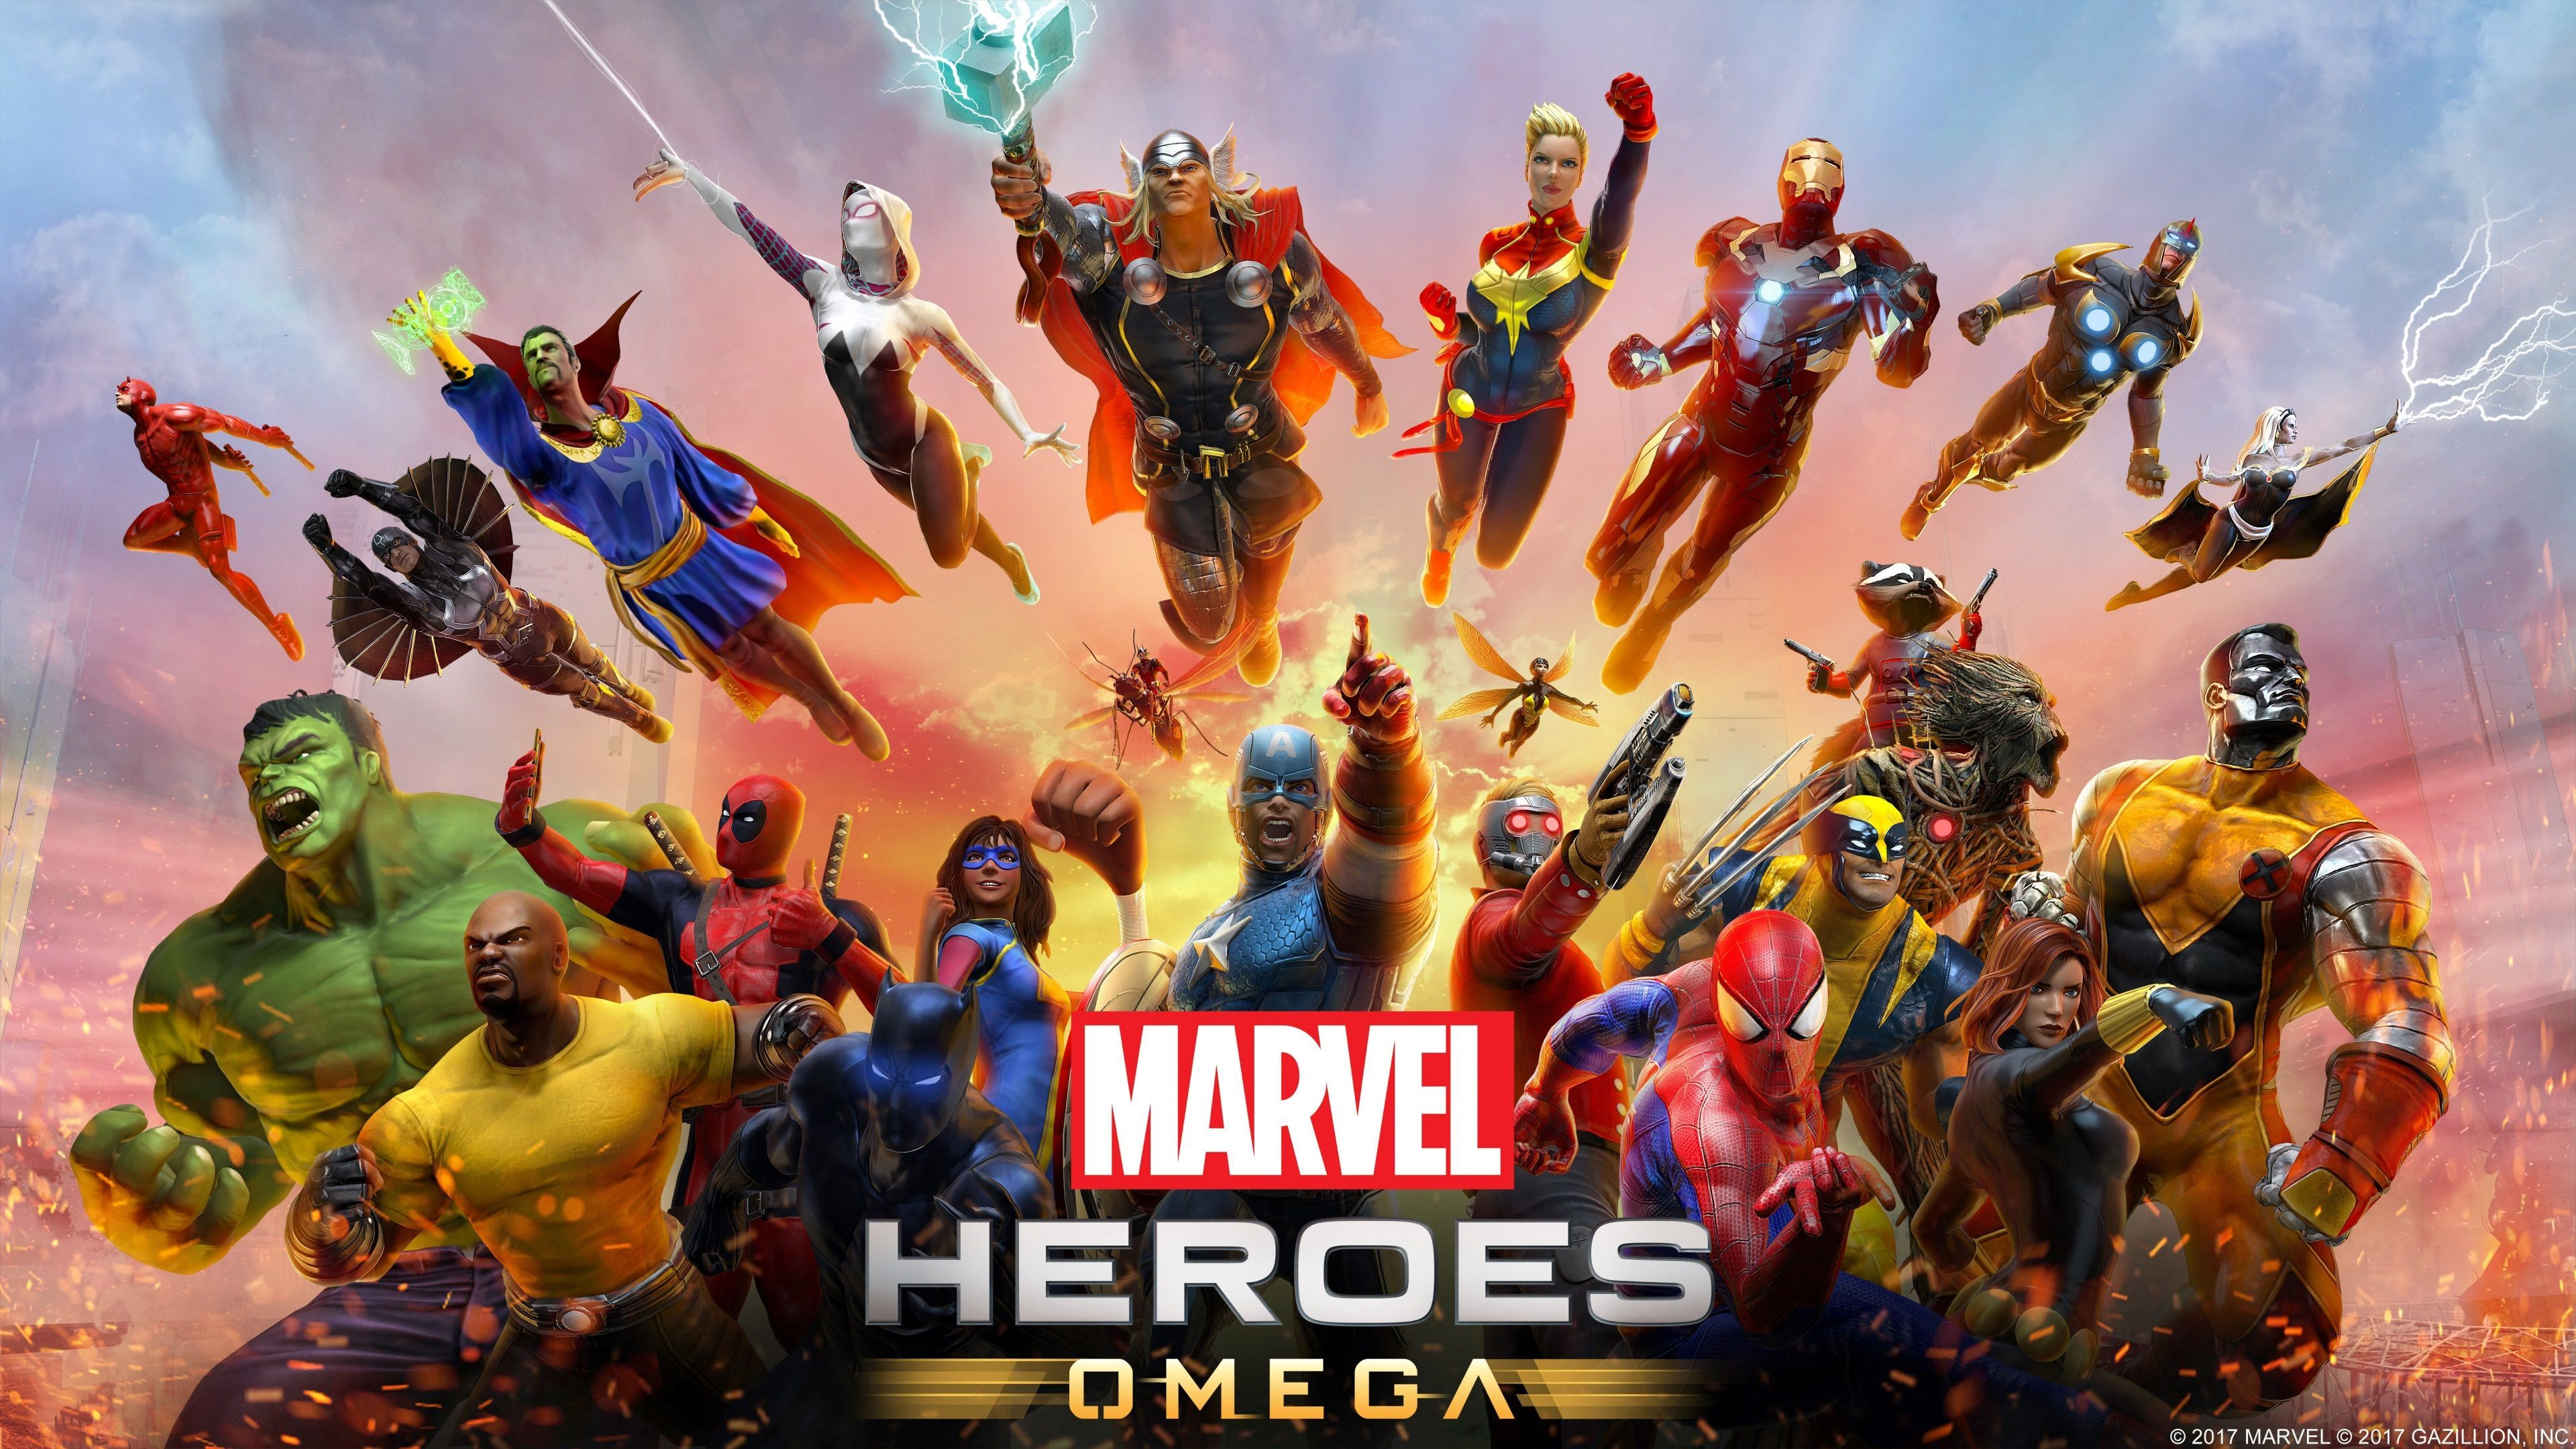 Marvel Heroes Omega 4k Wallpaper Hd Puter Desktop Marvel